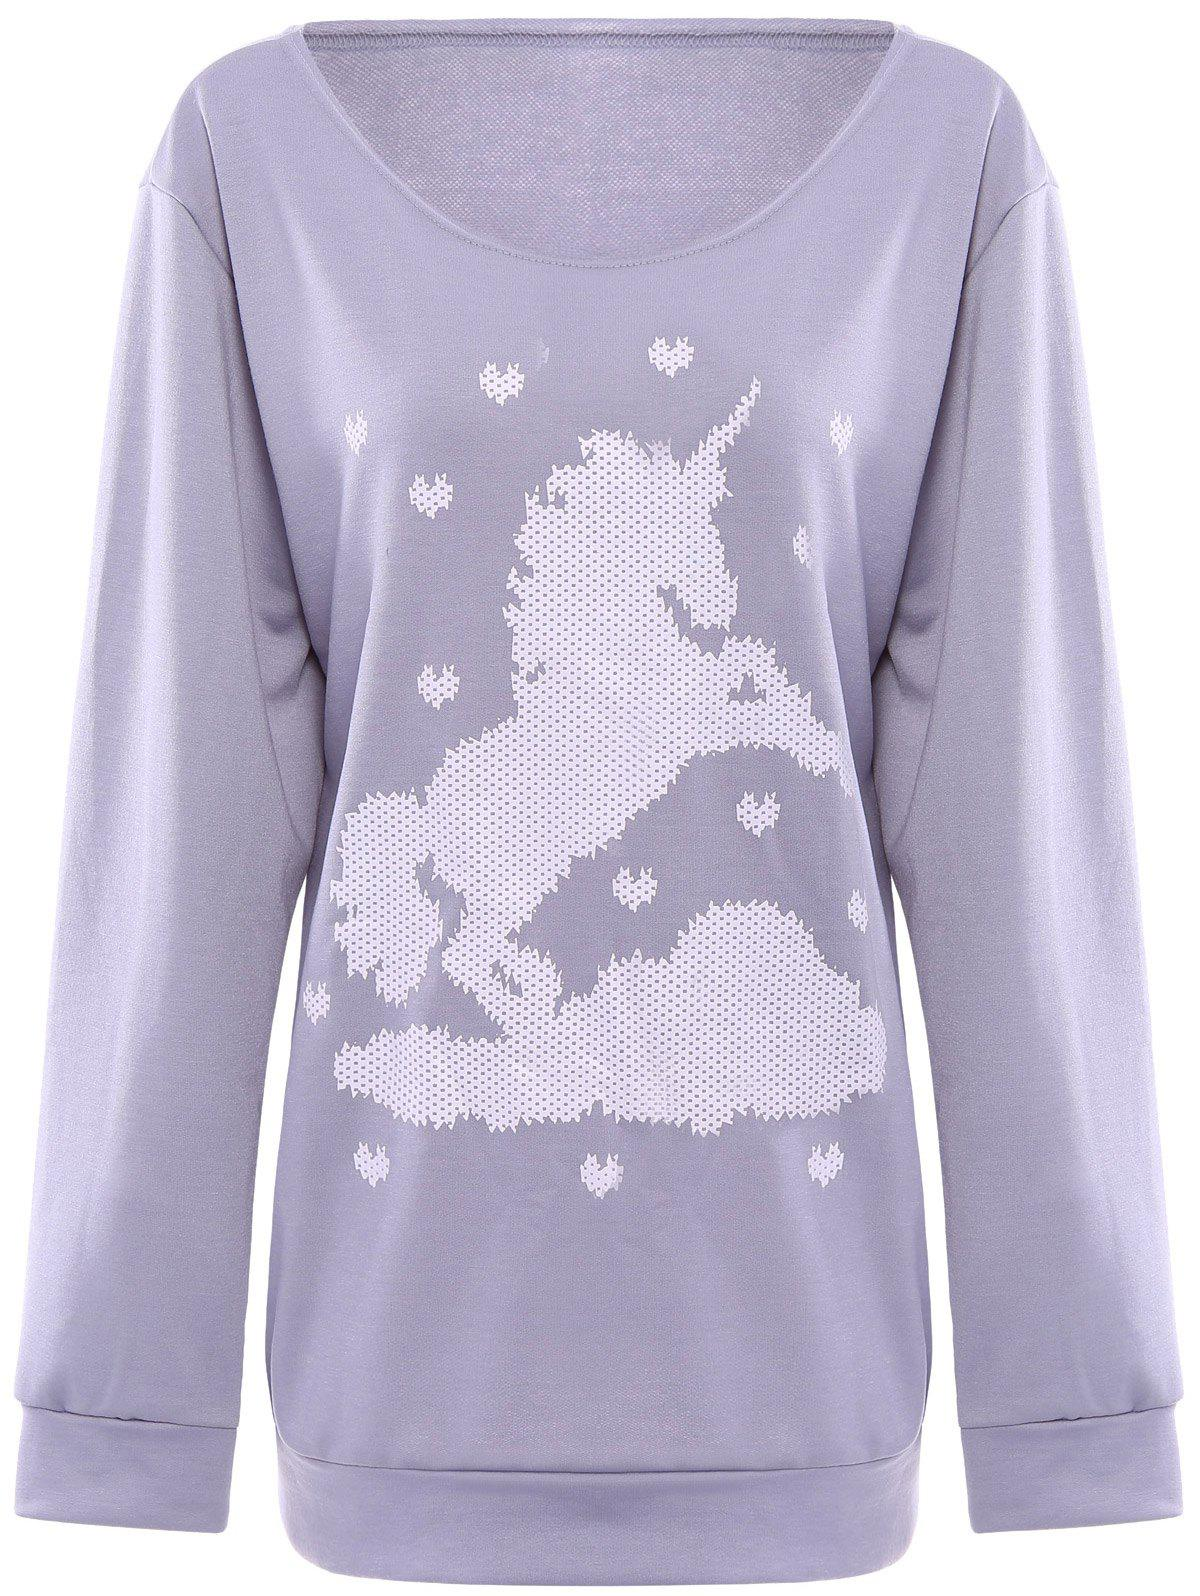 Hot Cute Horse and Heart Printed Skew Neck Pullover Sweatshirt For Women